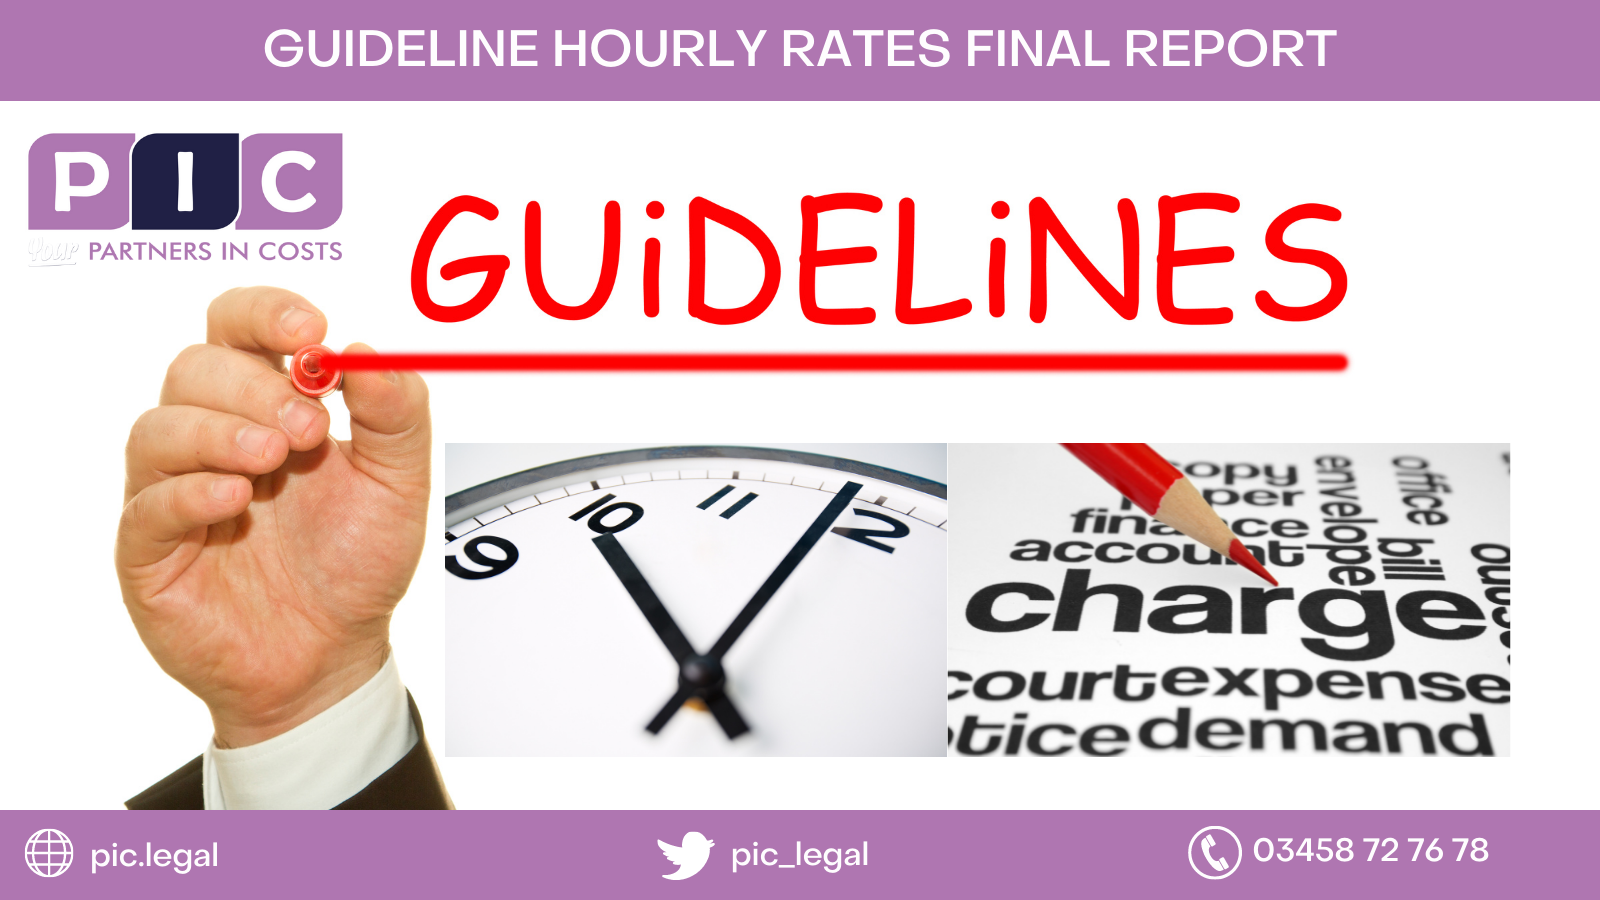 Colin Campbell reviews the final report into Guideline Hourly Rates